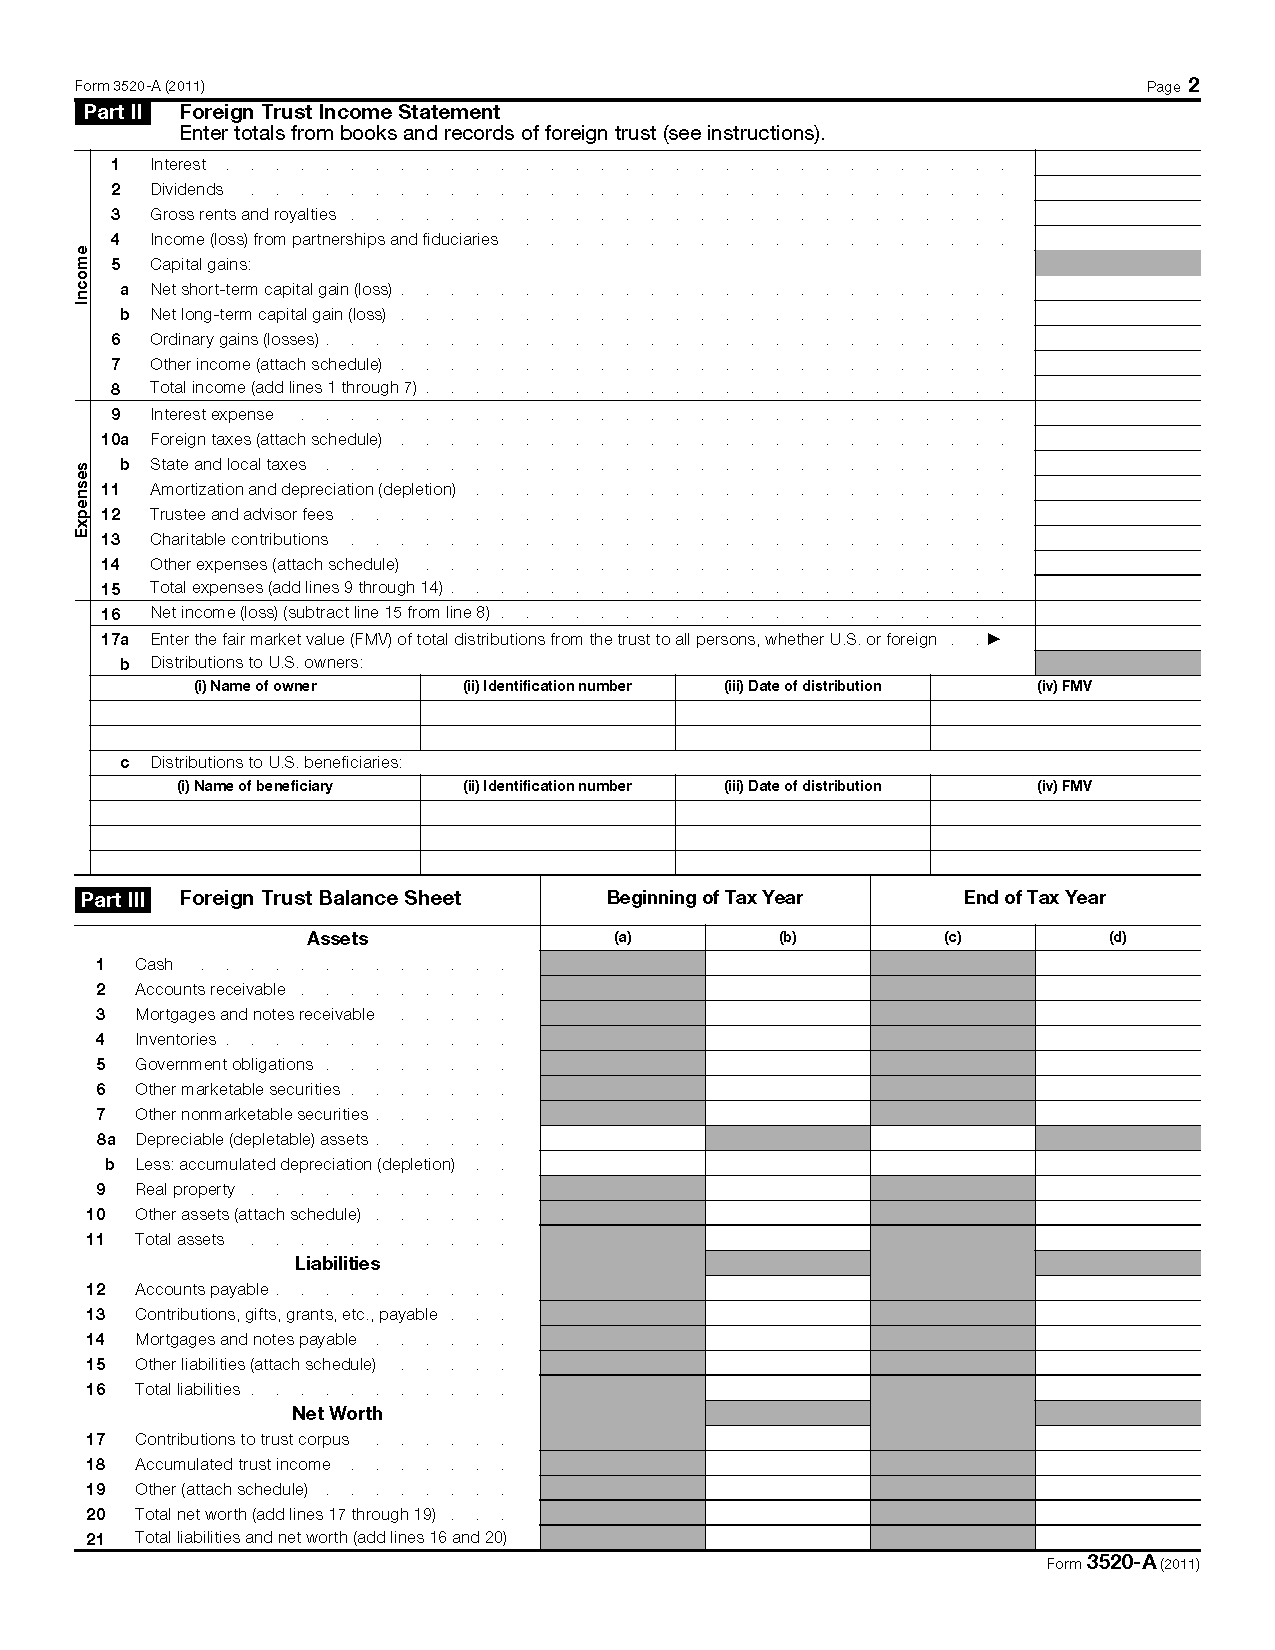 Form 3520 A Annual Information Return Of Foreign Trust With A Us Owner